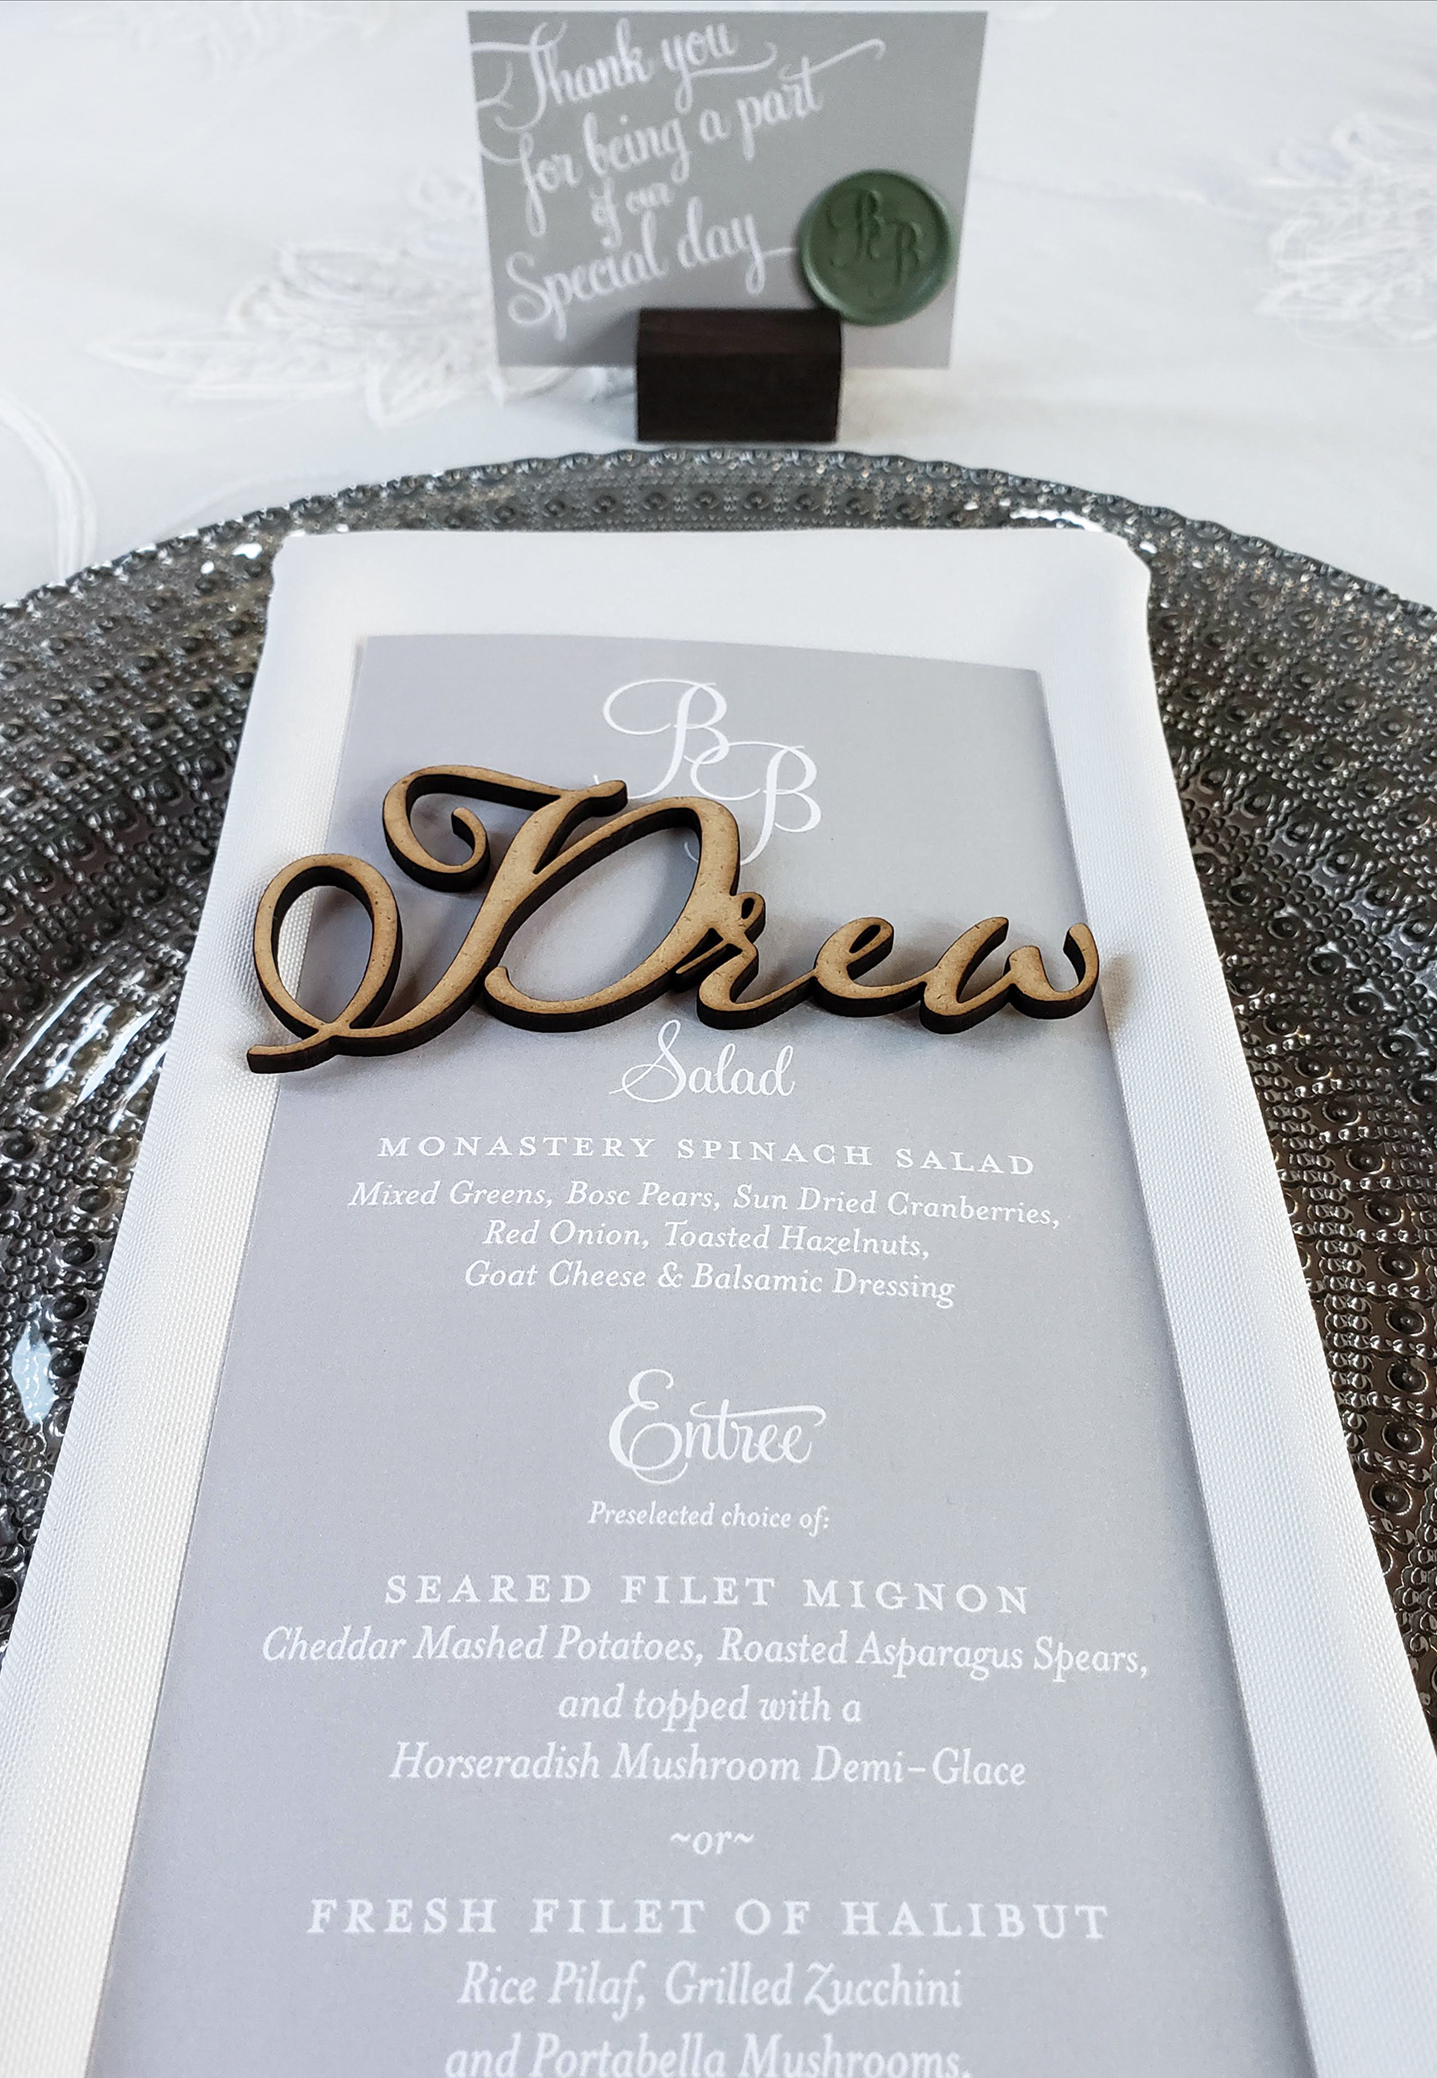 Handsome table settings with dark platinum glass chargers, calligraphy place cards, and laser cut script names for each guest at a chic winter wedding.